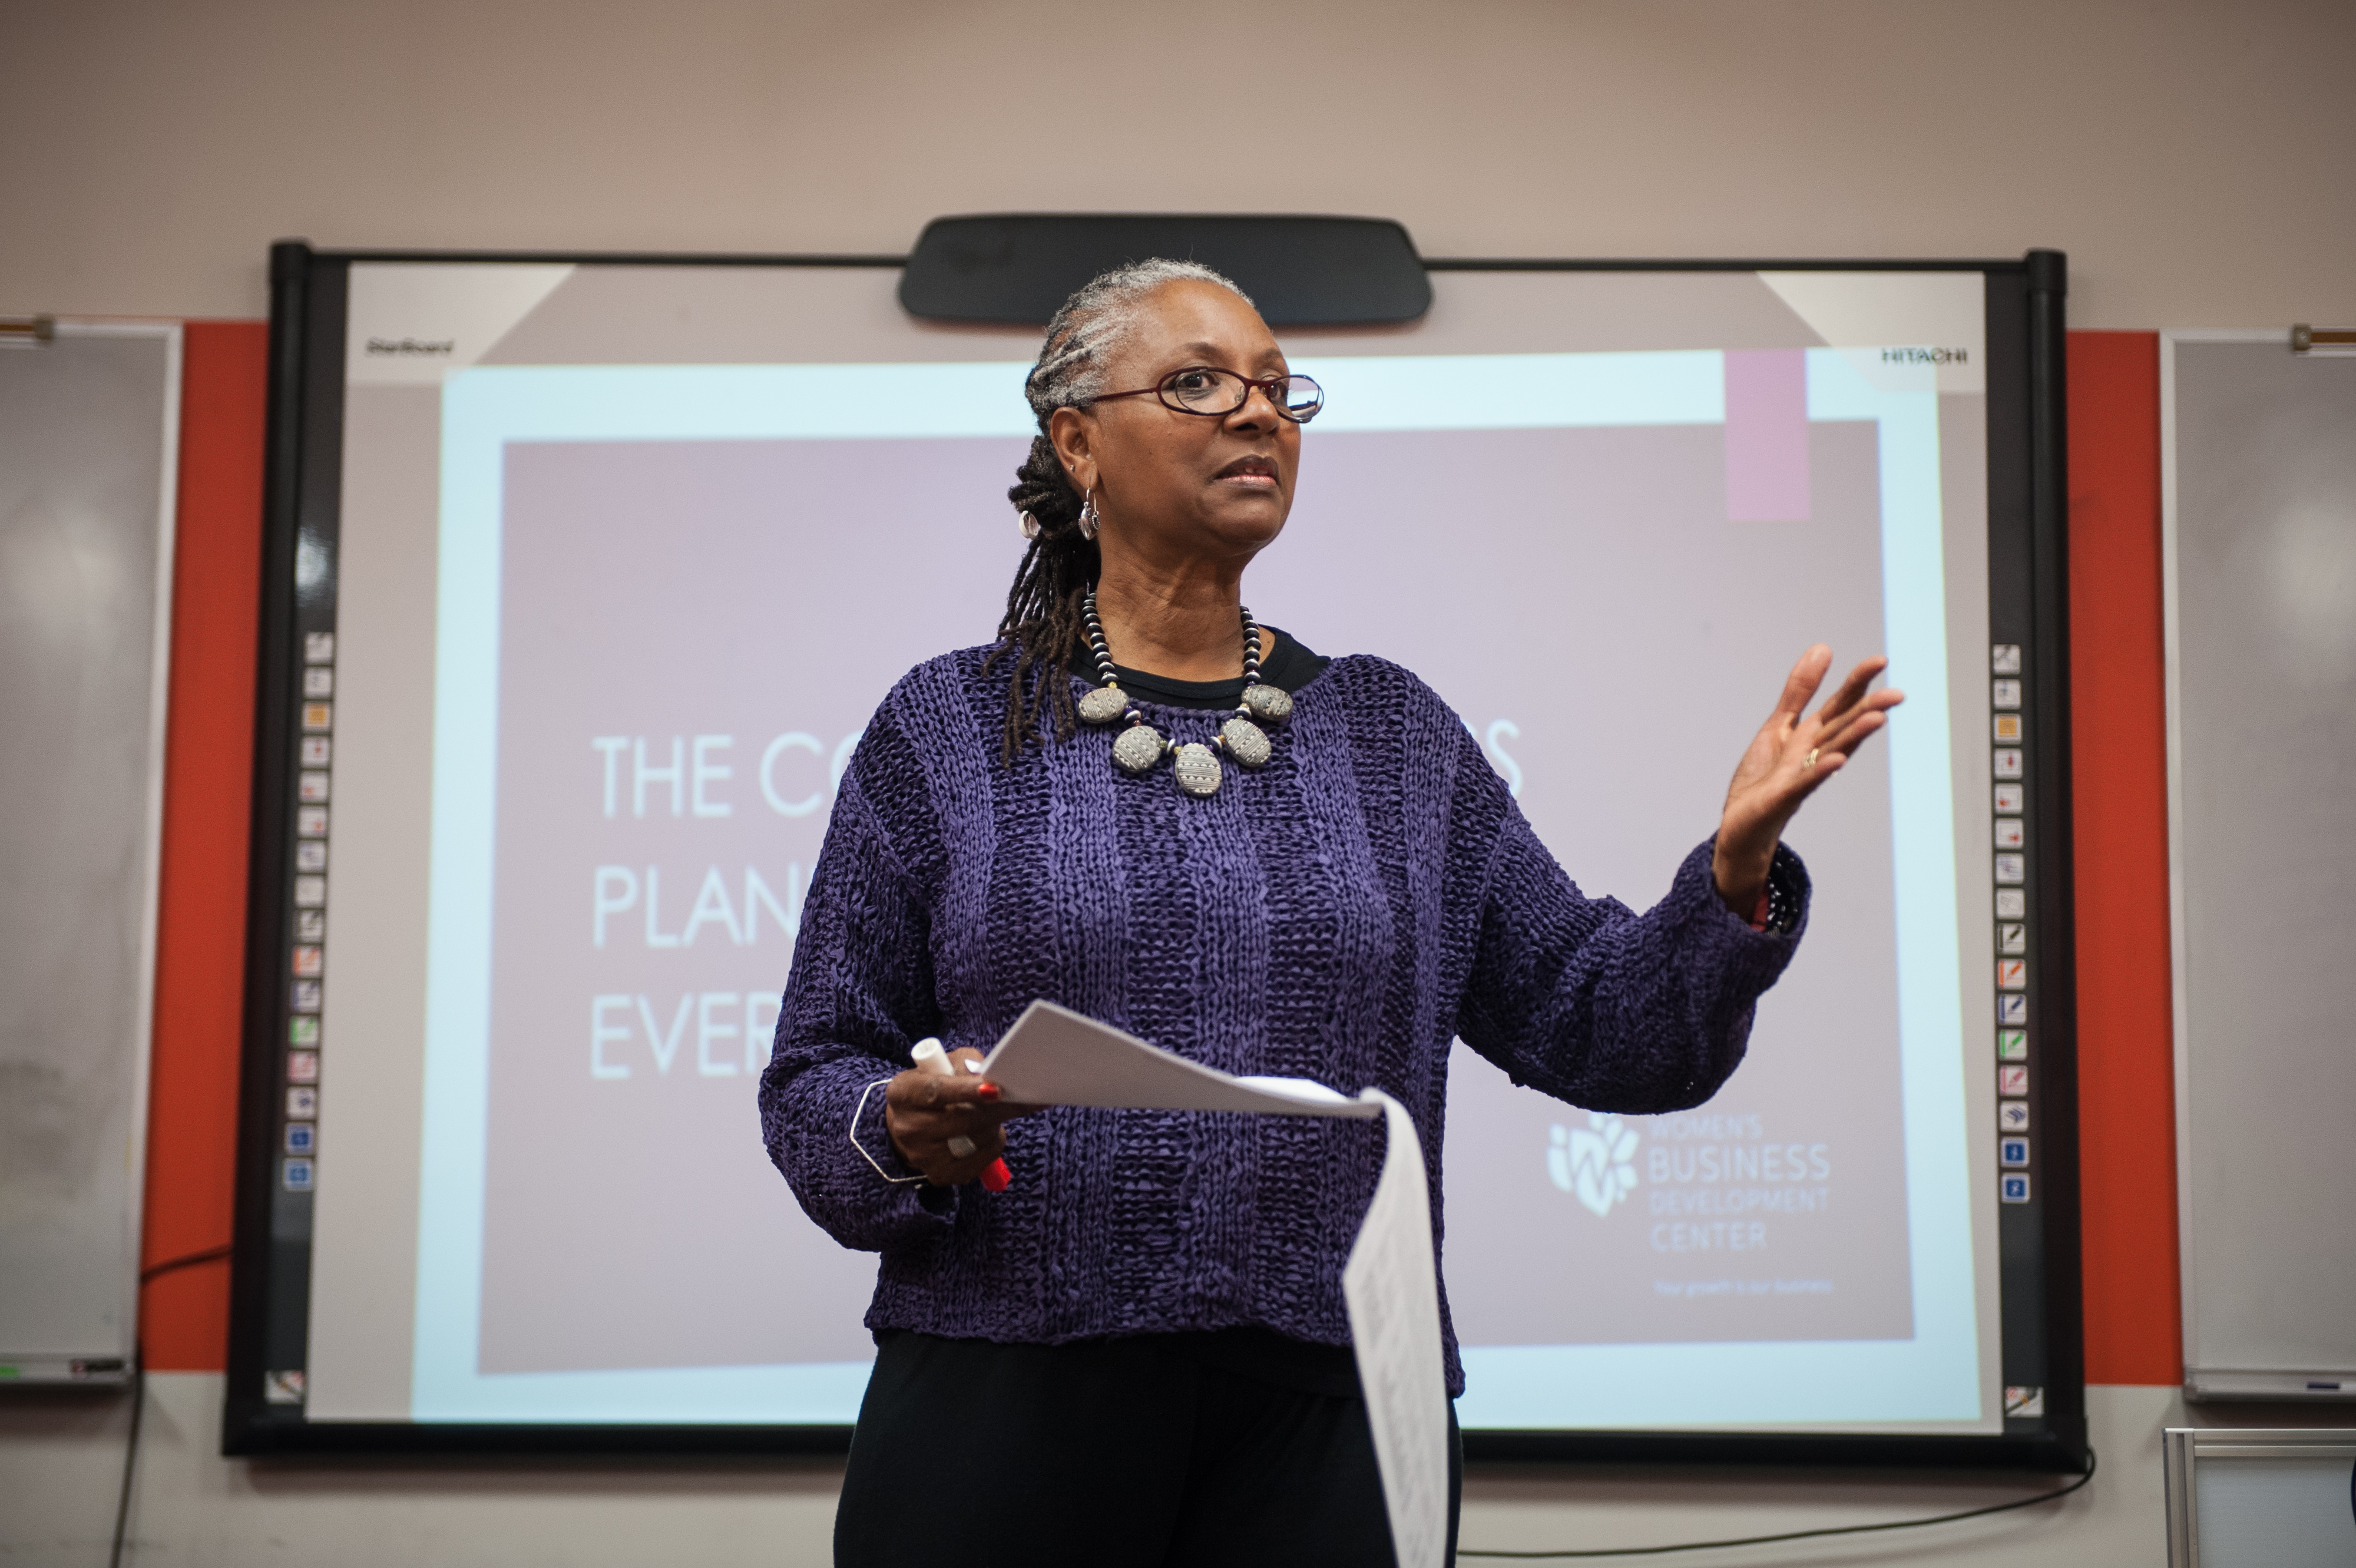 Participants of the B&E: A Plan For Profit and \nYoung Parents Program at a YWCA facility in Chicago, IL. Tuesday, September 30, 2015. Photo: Christopher Dilts/